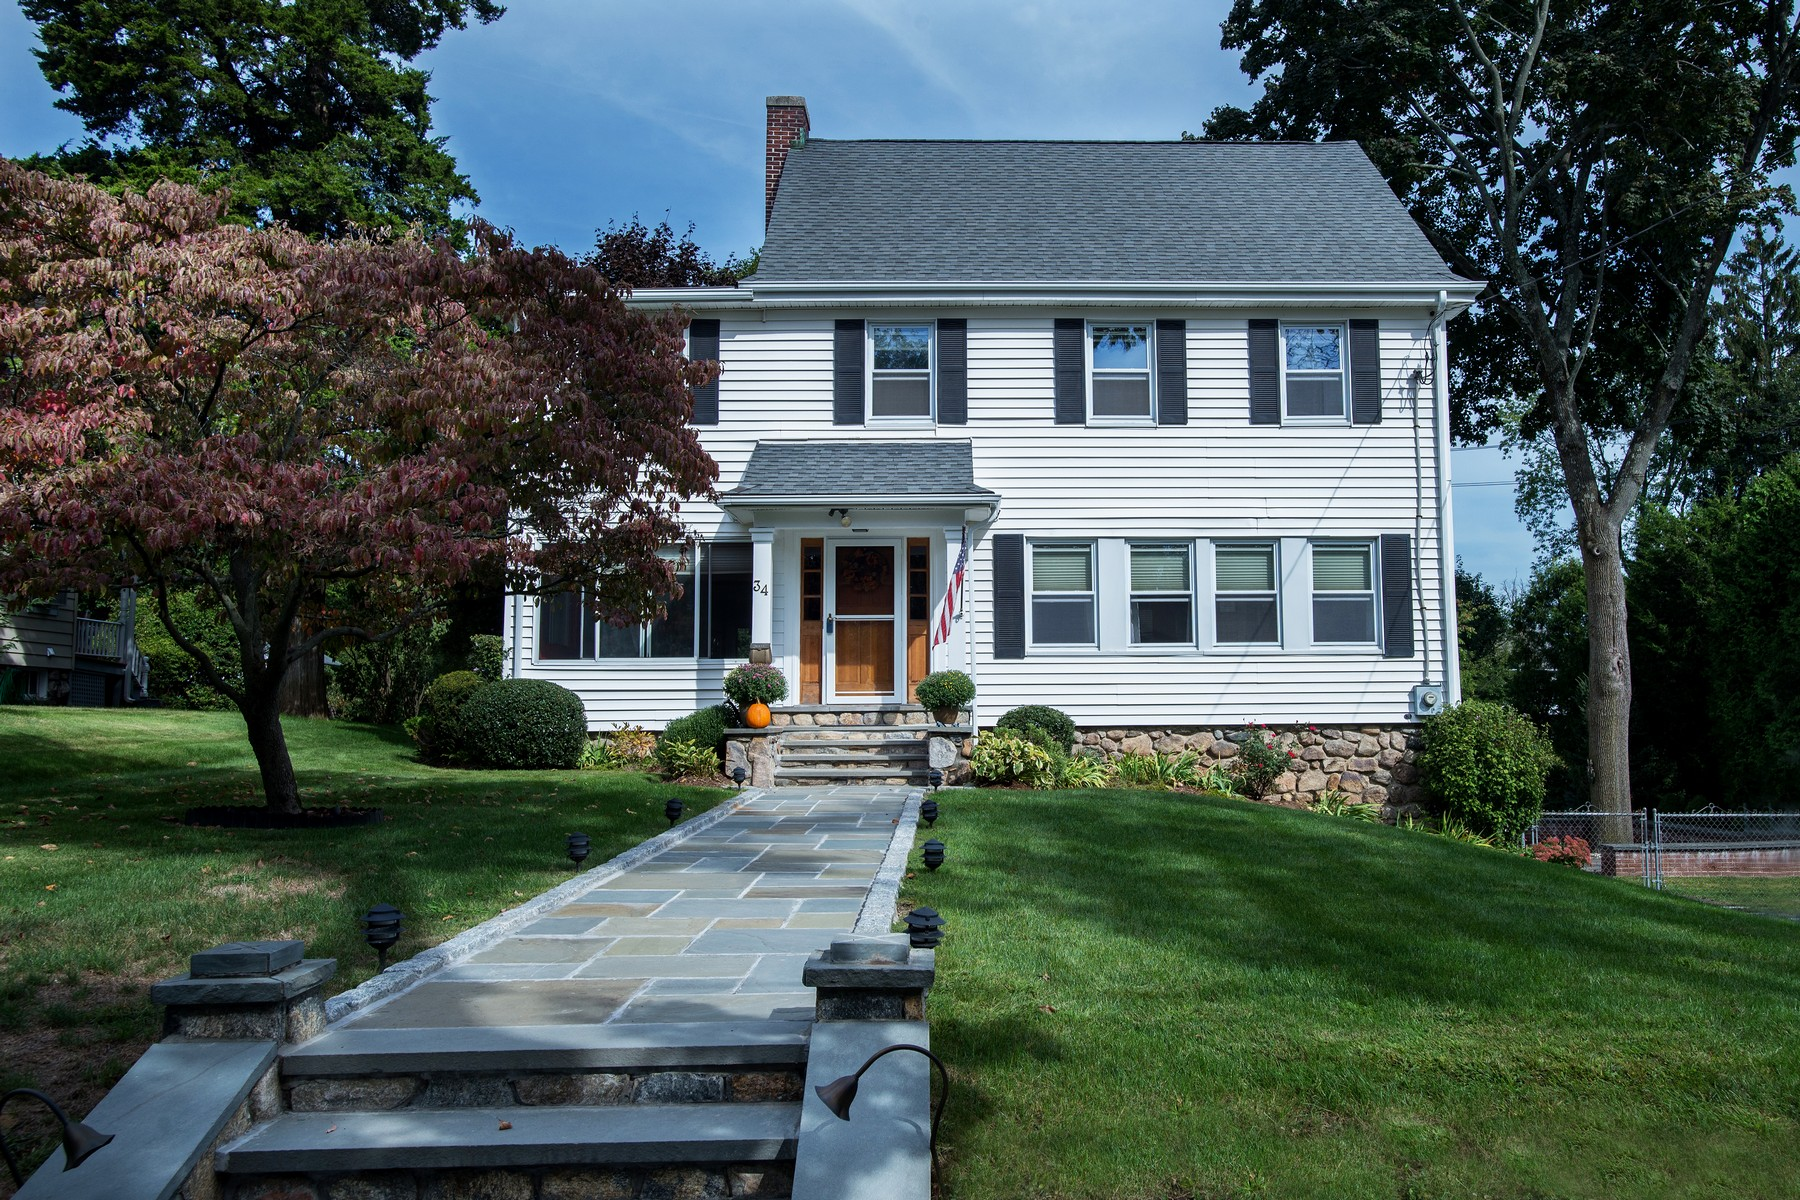 Single Family Home for Sale at Glenbrook Colonial 34 Tremont Avenue Stamford, Connecticut, 06906 United States